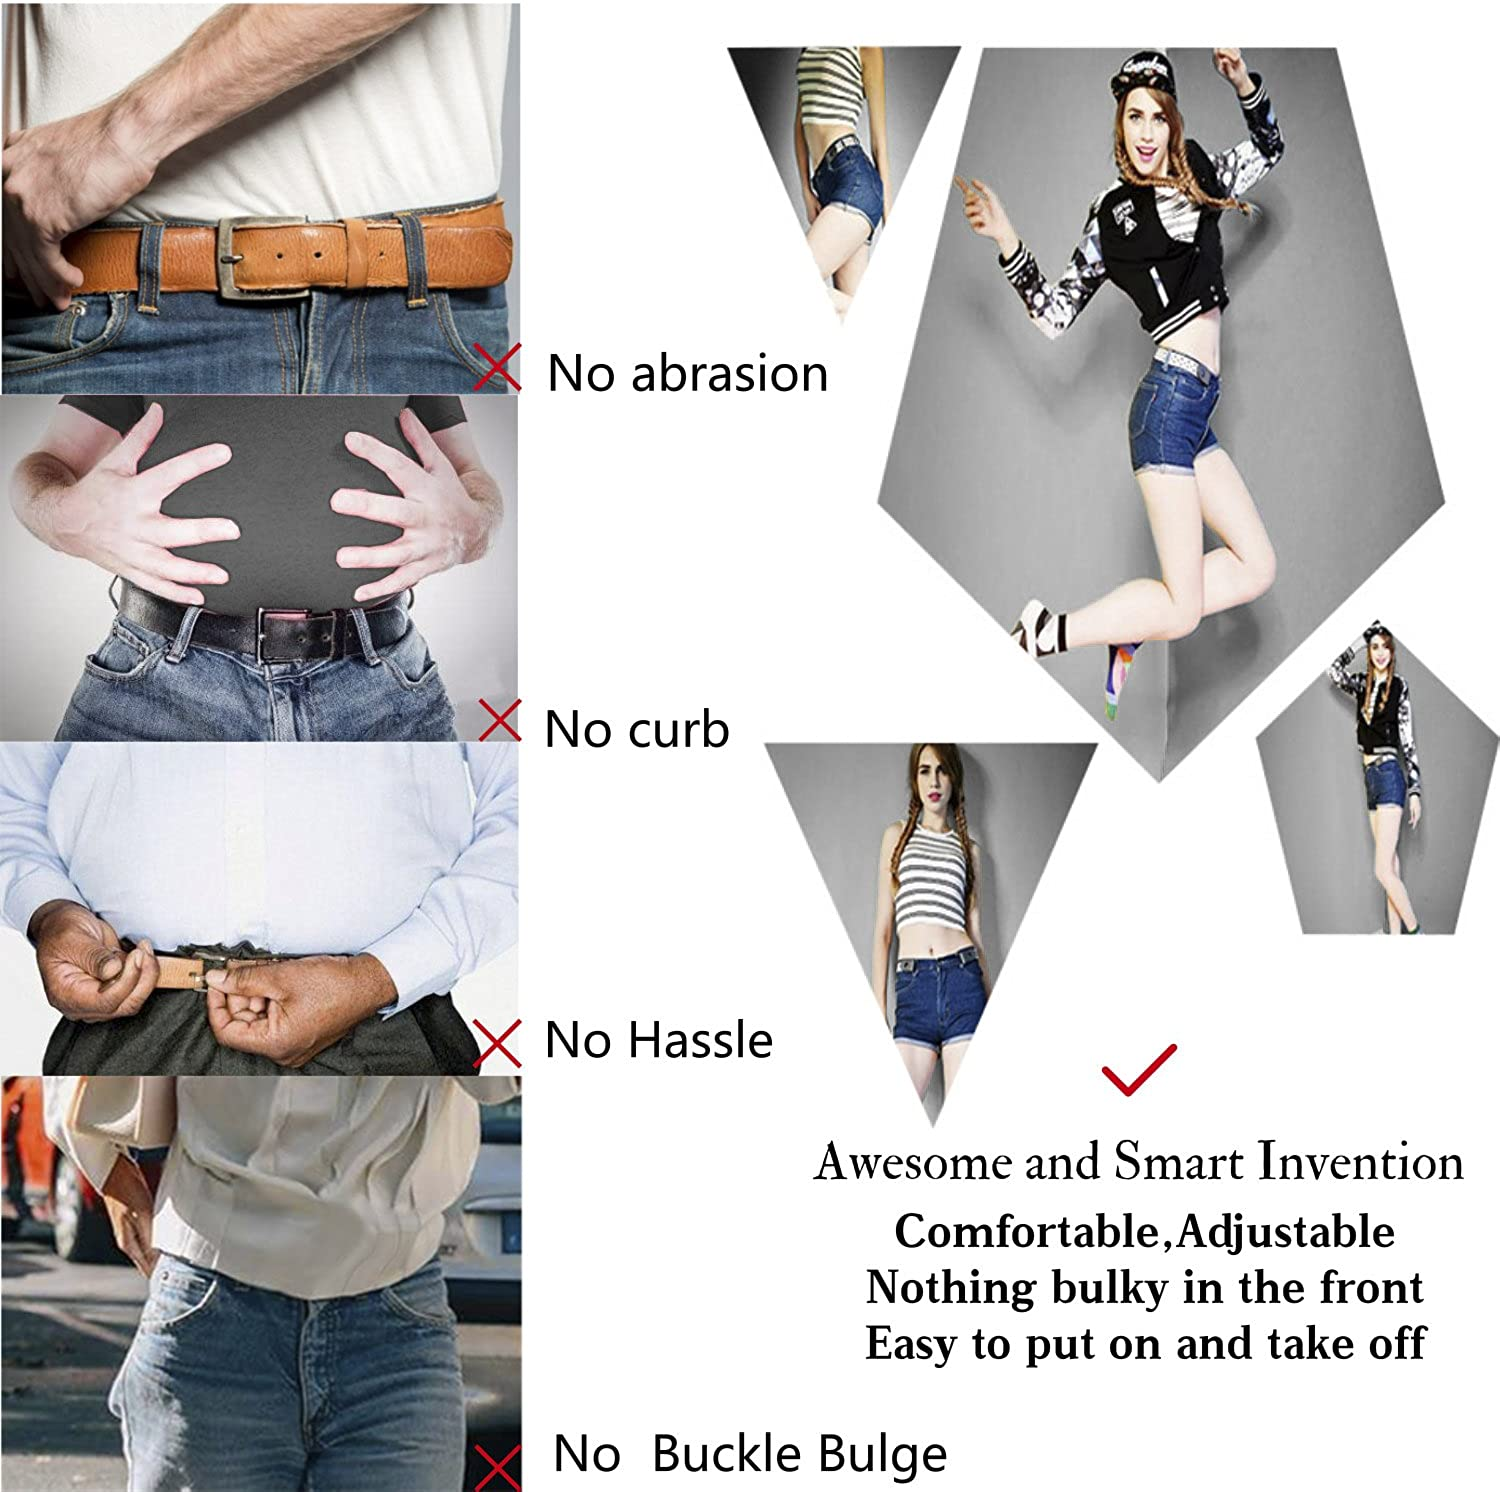 No Buckle Show Belt for Men Buckle Free Stretch Belt for Jeans Pants 1.38 Inches Wide